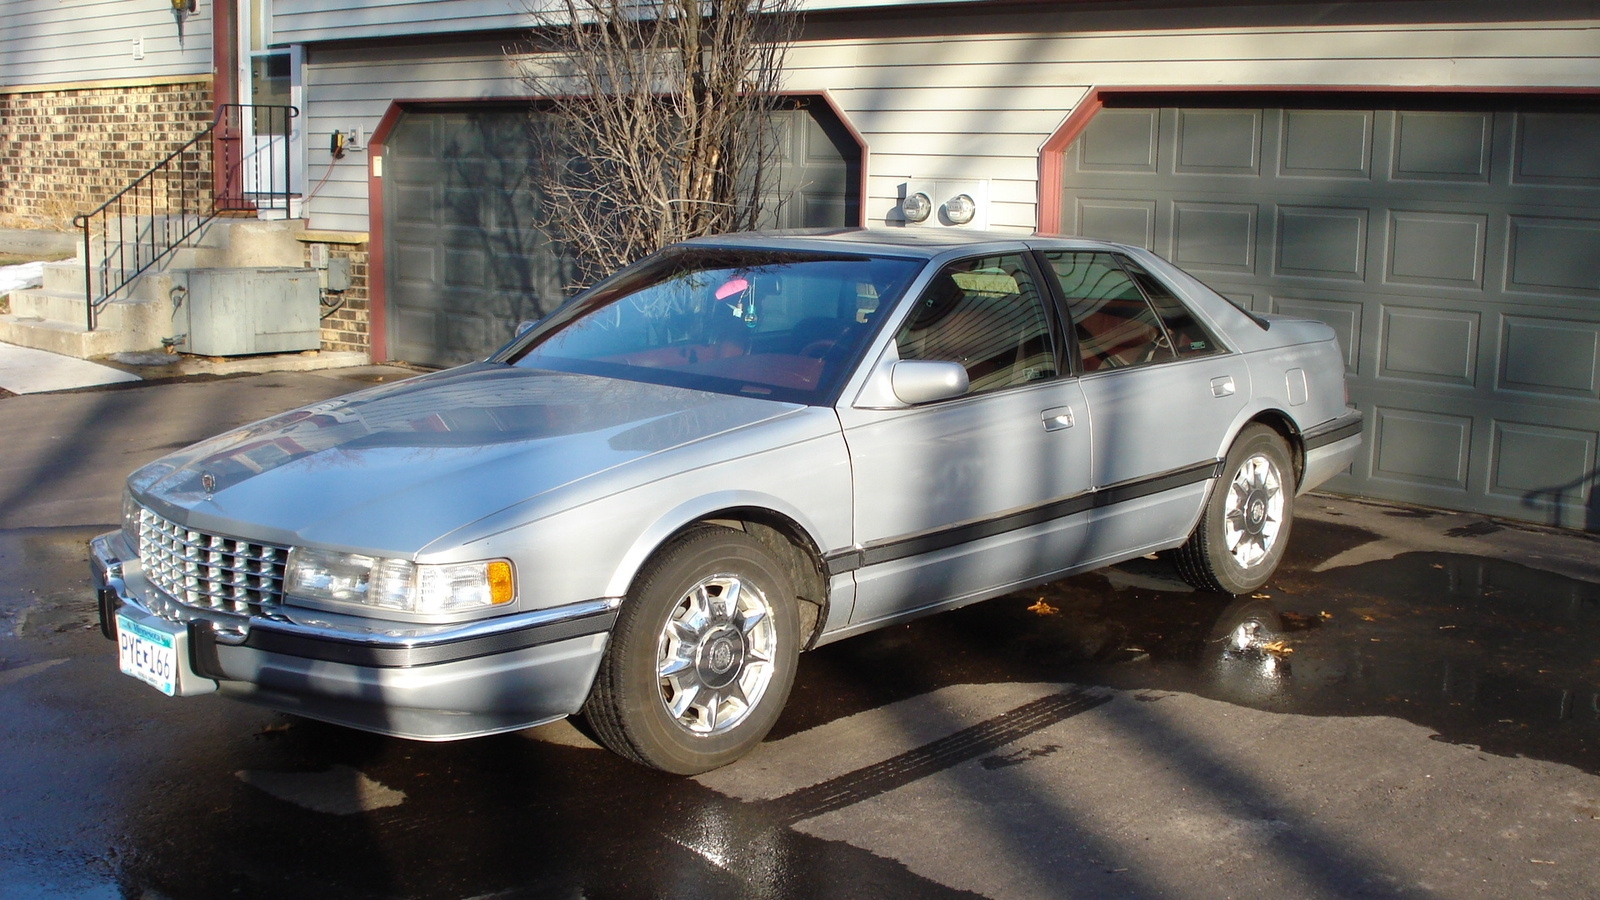 Picture of 1994 cadillac seville exterior gallery_worthy